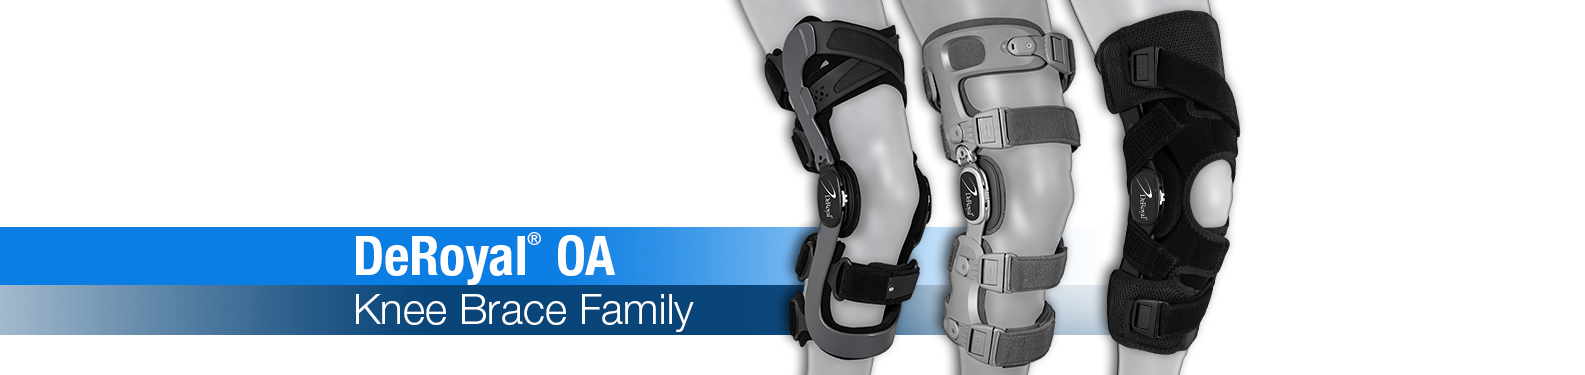 DeRoyal OA Knee Bracing Family